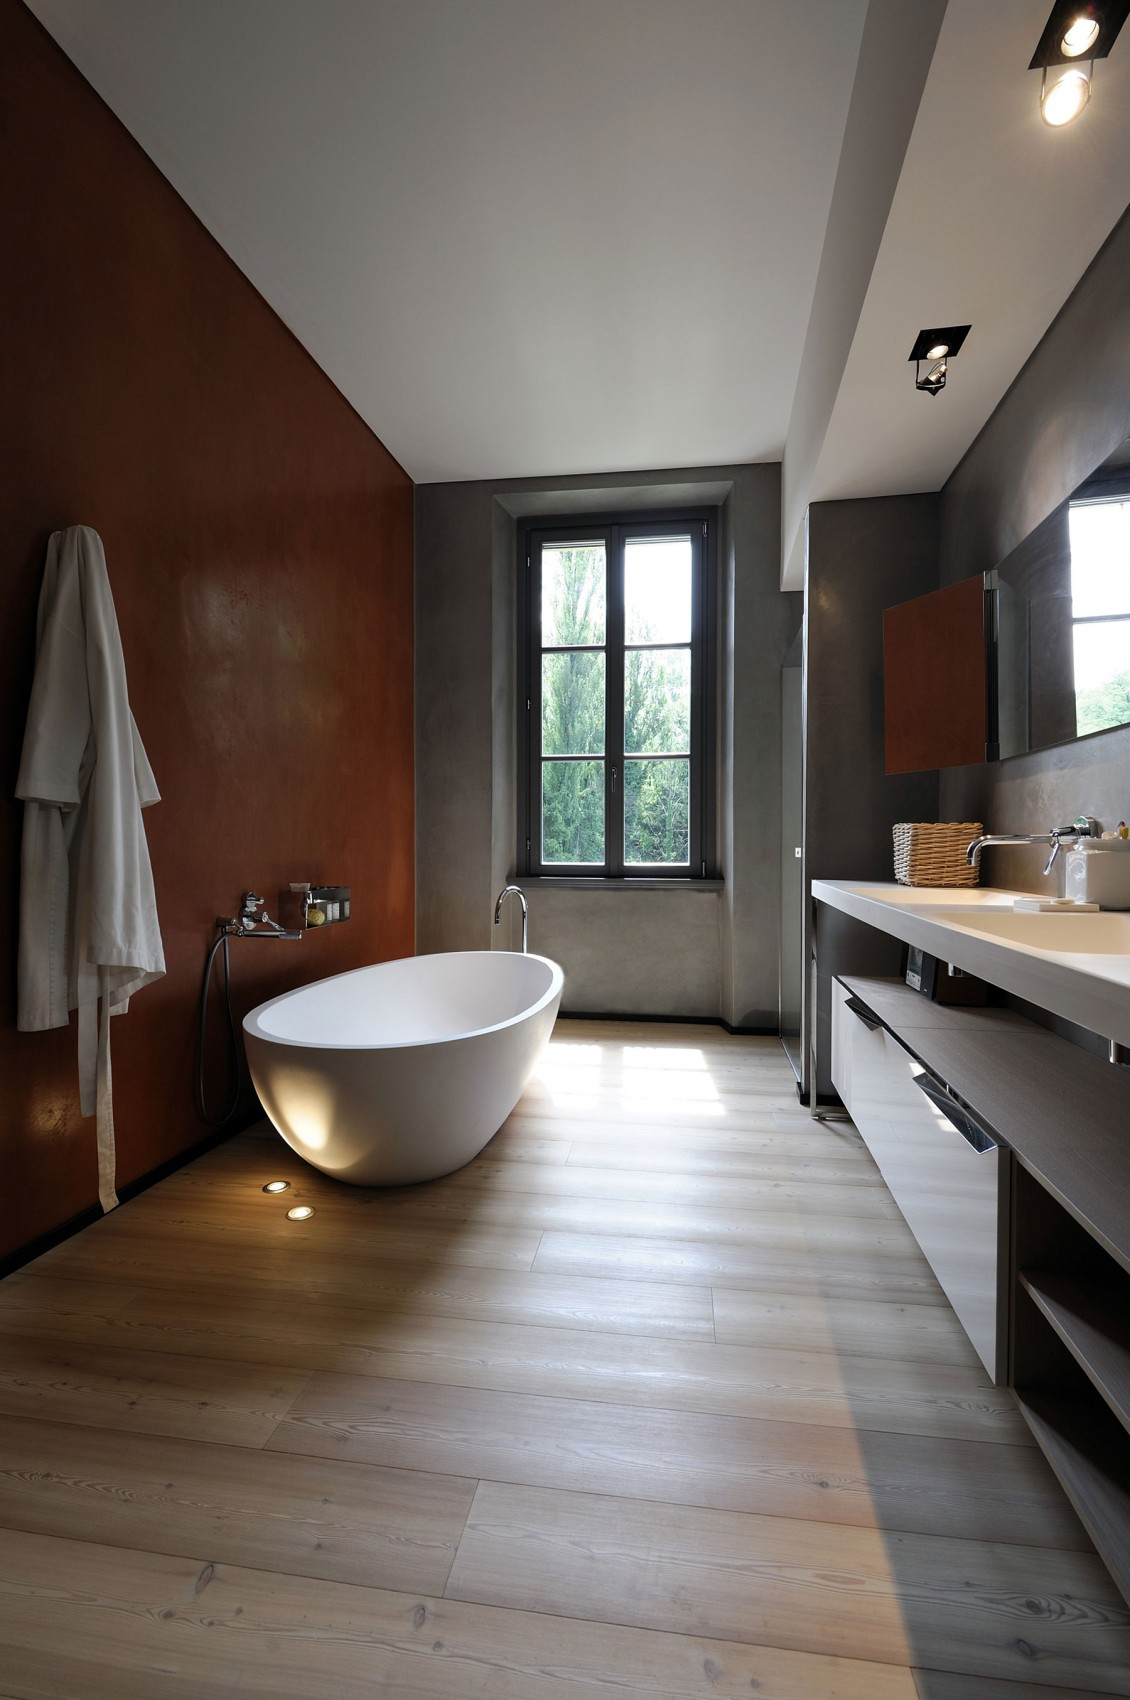 Flooring for bathrooms recommendations -  Flooring For Bathrooms Recommendations 19 Download